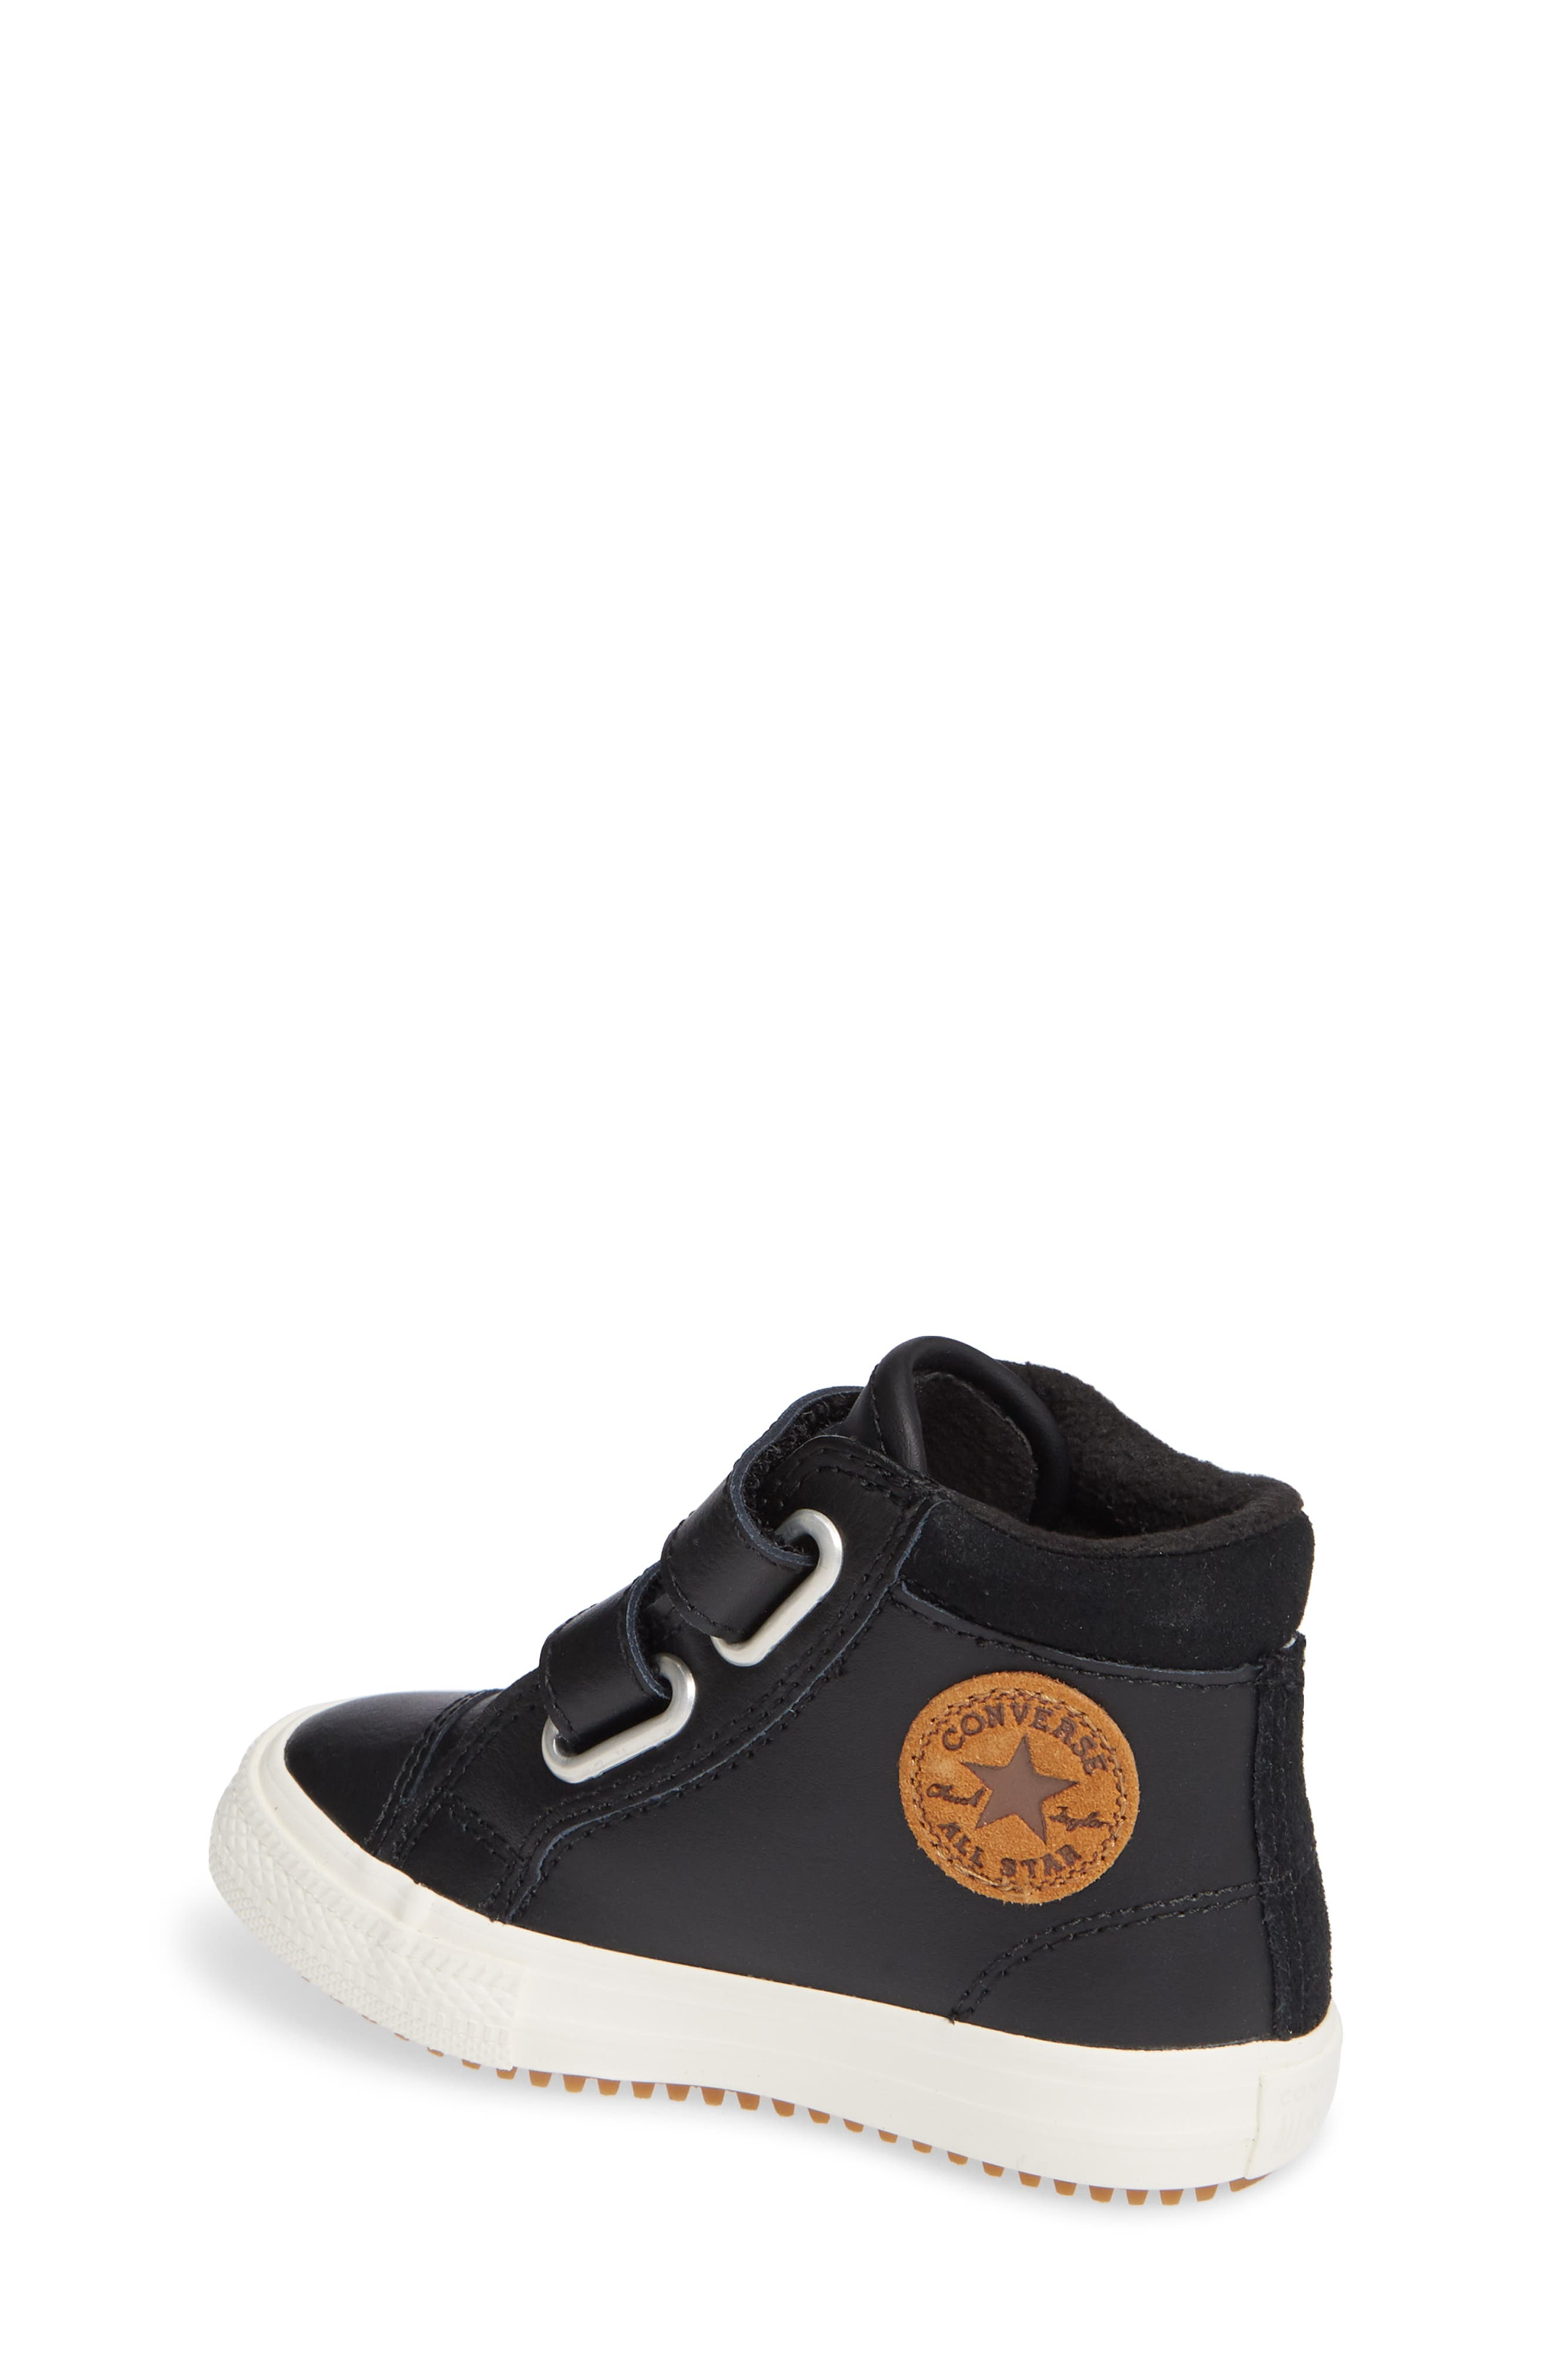 Chuck Taylor<sup>®</sup> All Star<sup>®</sup> 2V Leather High TopSneaker,                             Alternate thumbnail 2, color,                             BLACK